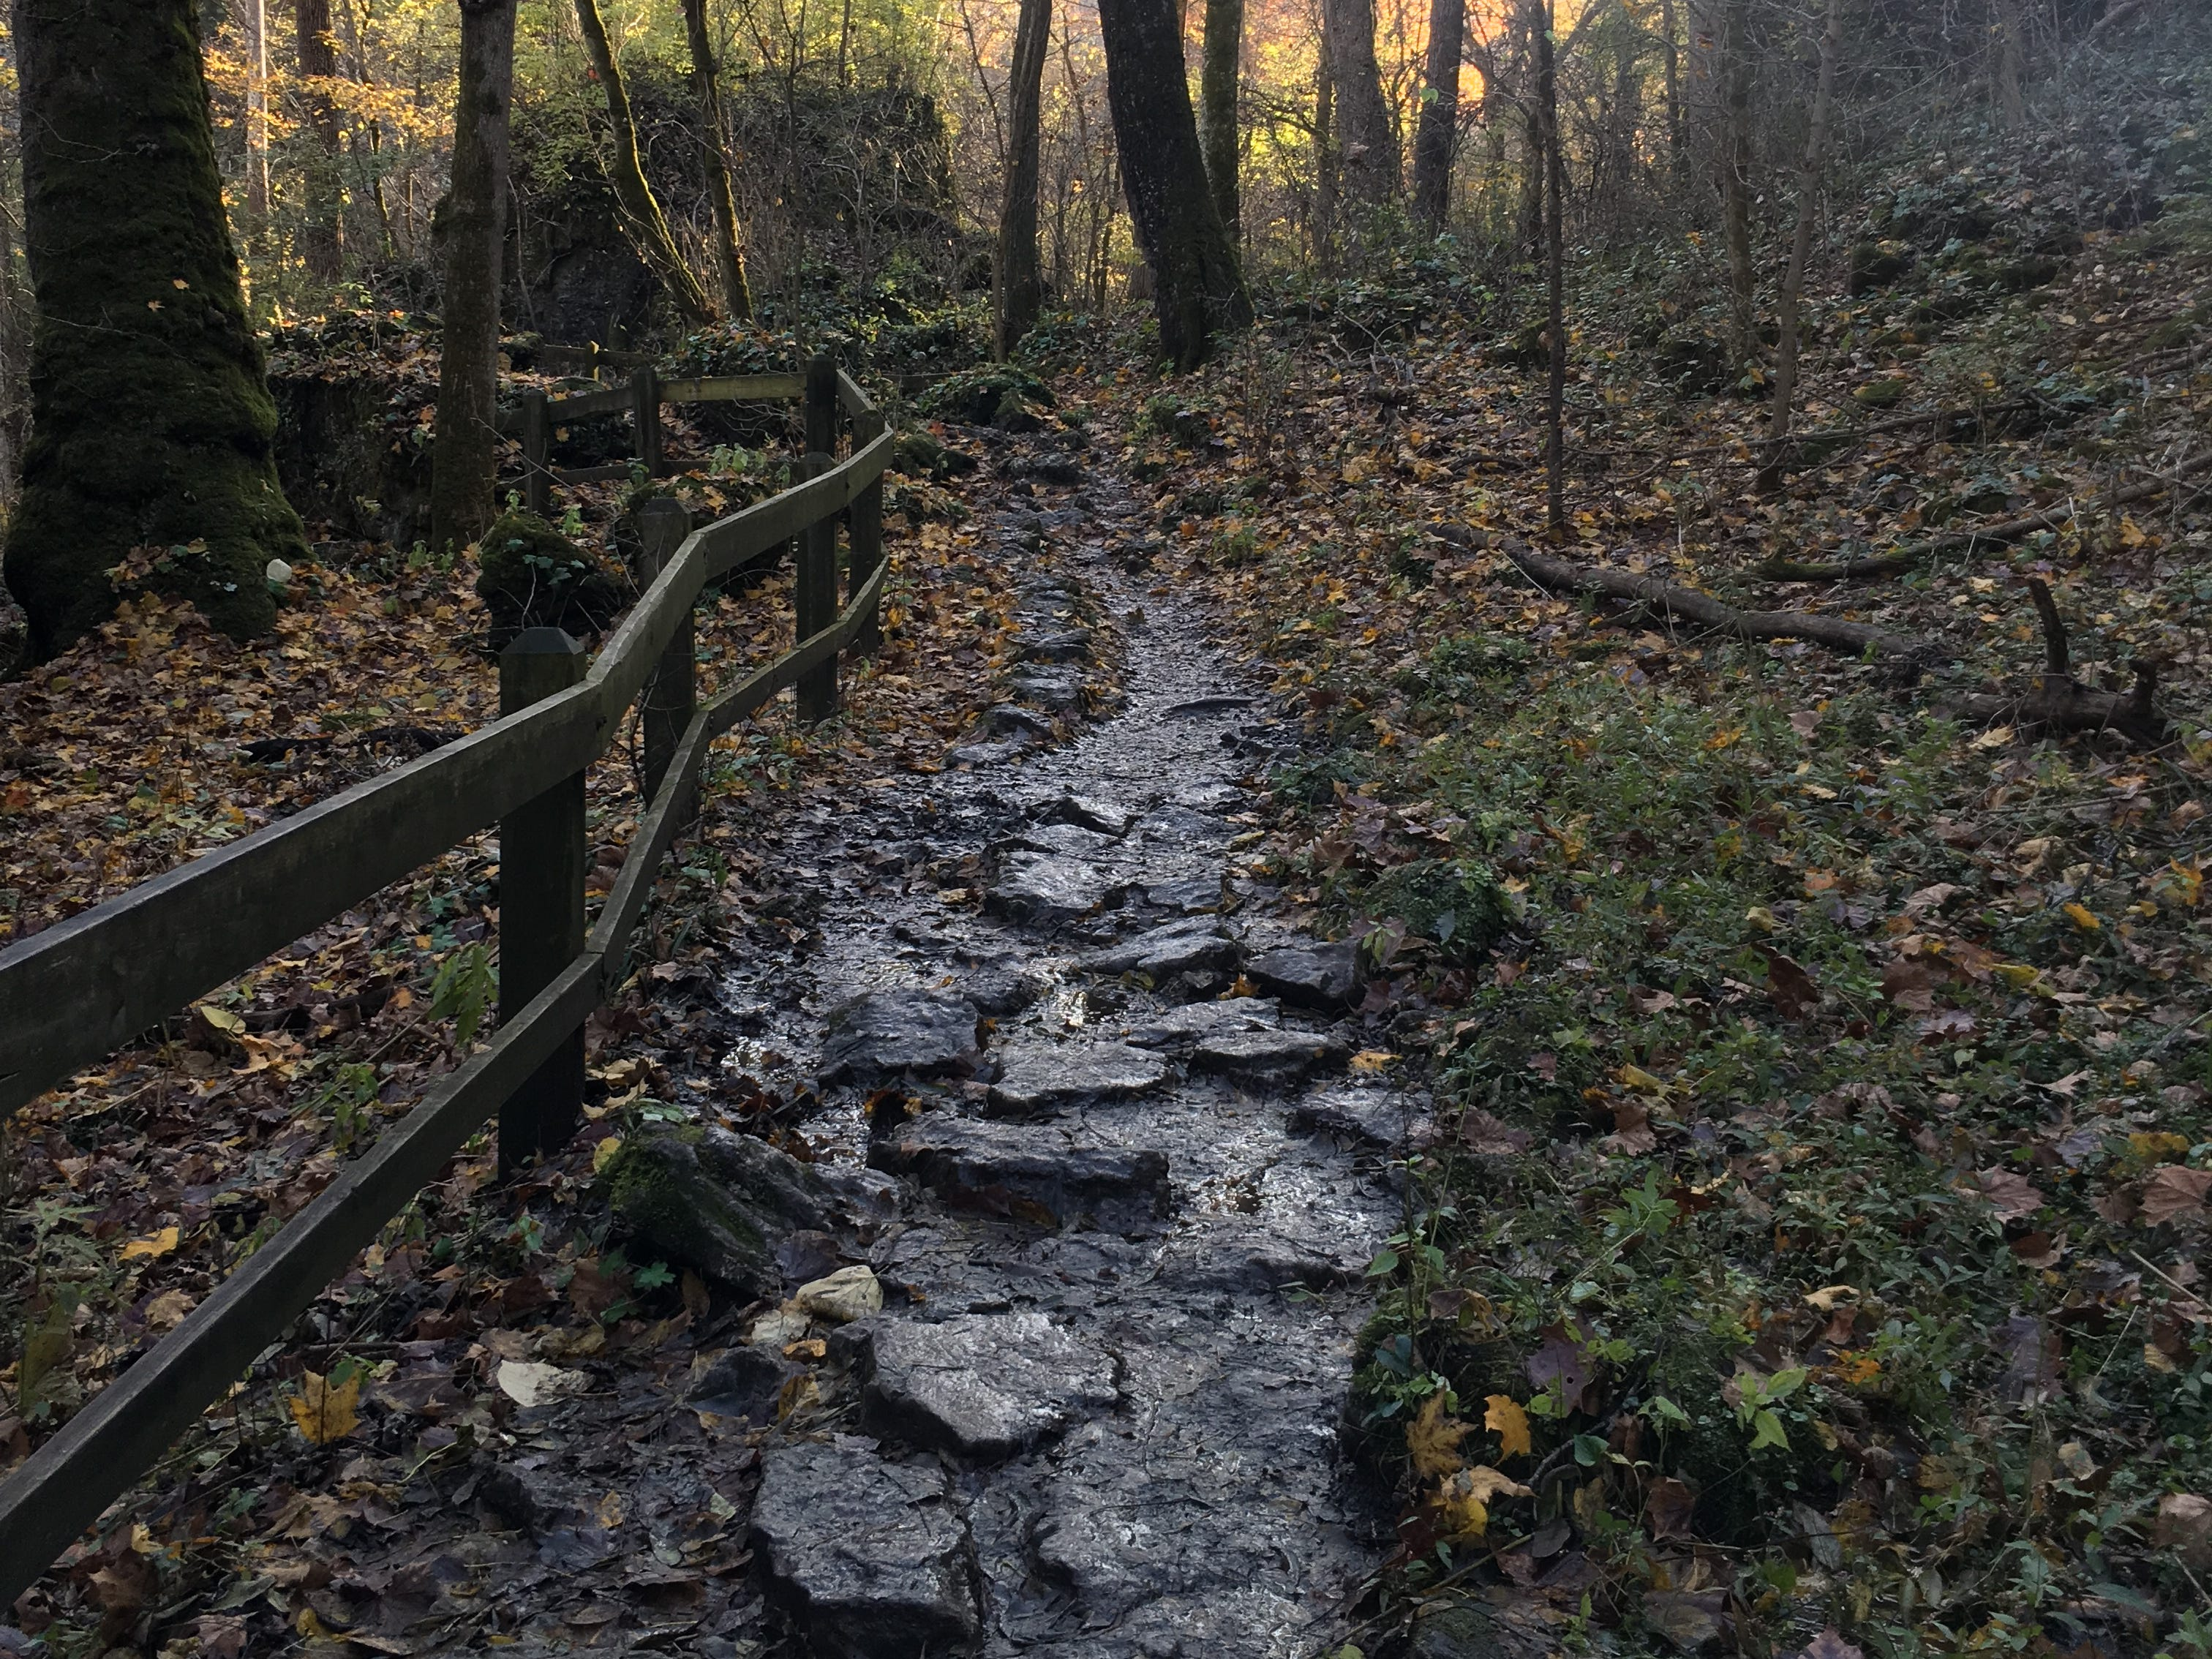 A path winds along with the Little Miami River in Clifton Gorge State Nature Preserve.